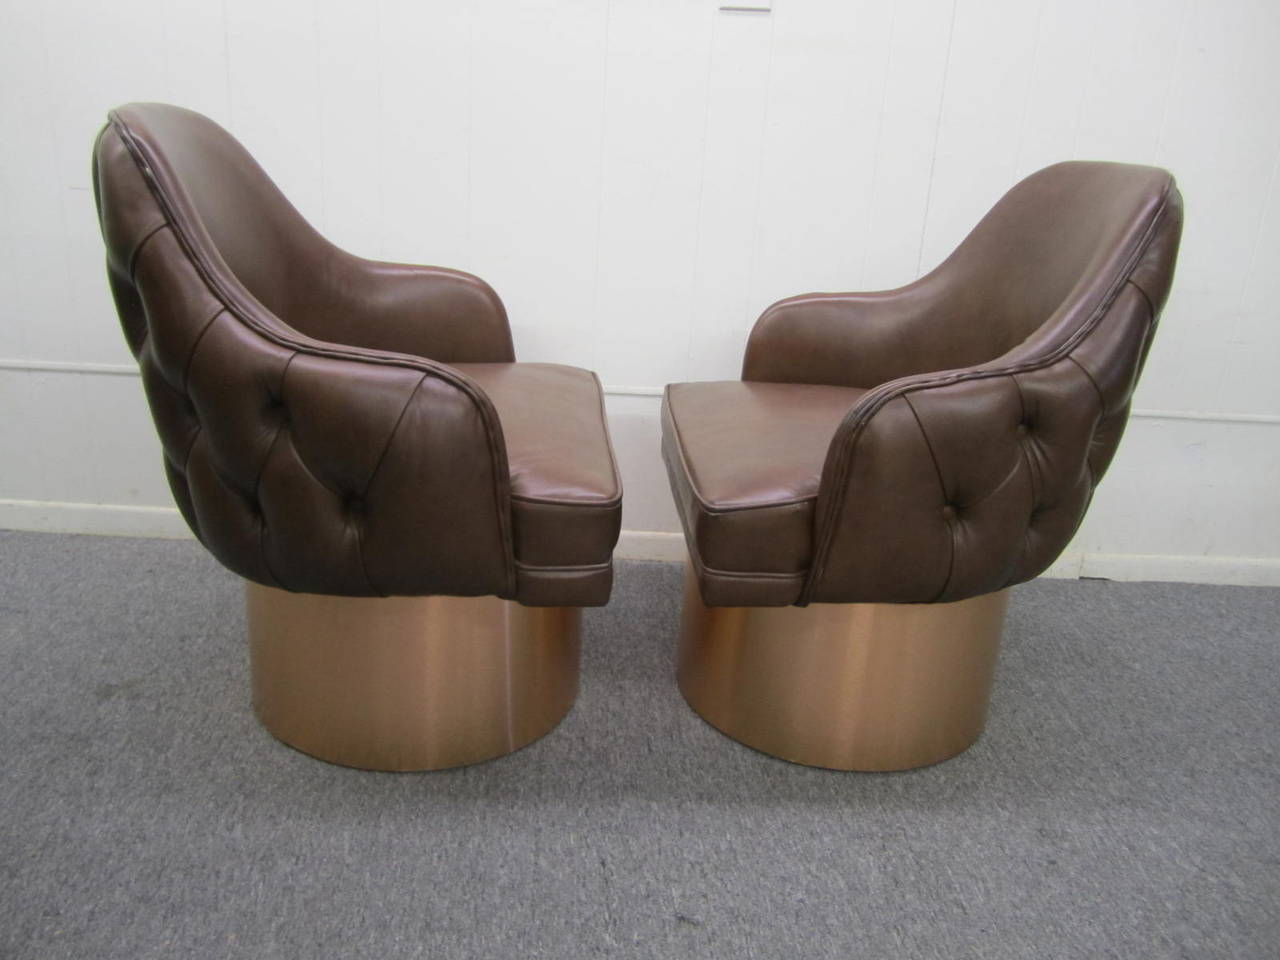 Excellent set of four Milo Baughman style leather tufted swivel chairs. This set retains their original chocolate brown leather in nice vintage condition with only minor signs of wear. The tall brushed copper metal bases look amazing and swivel